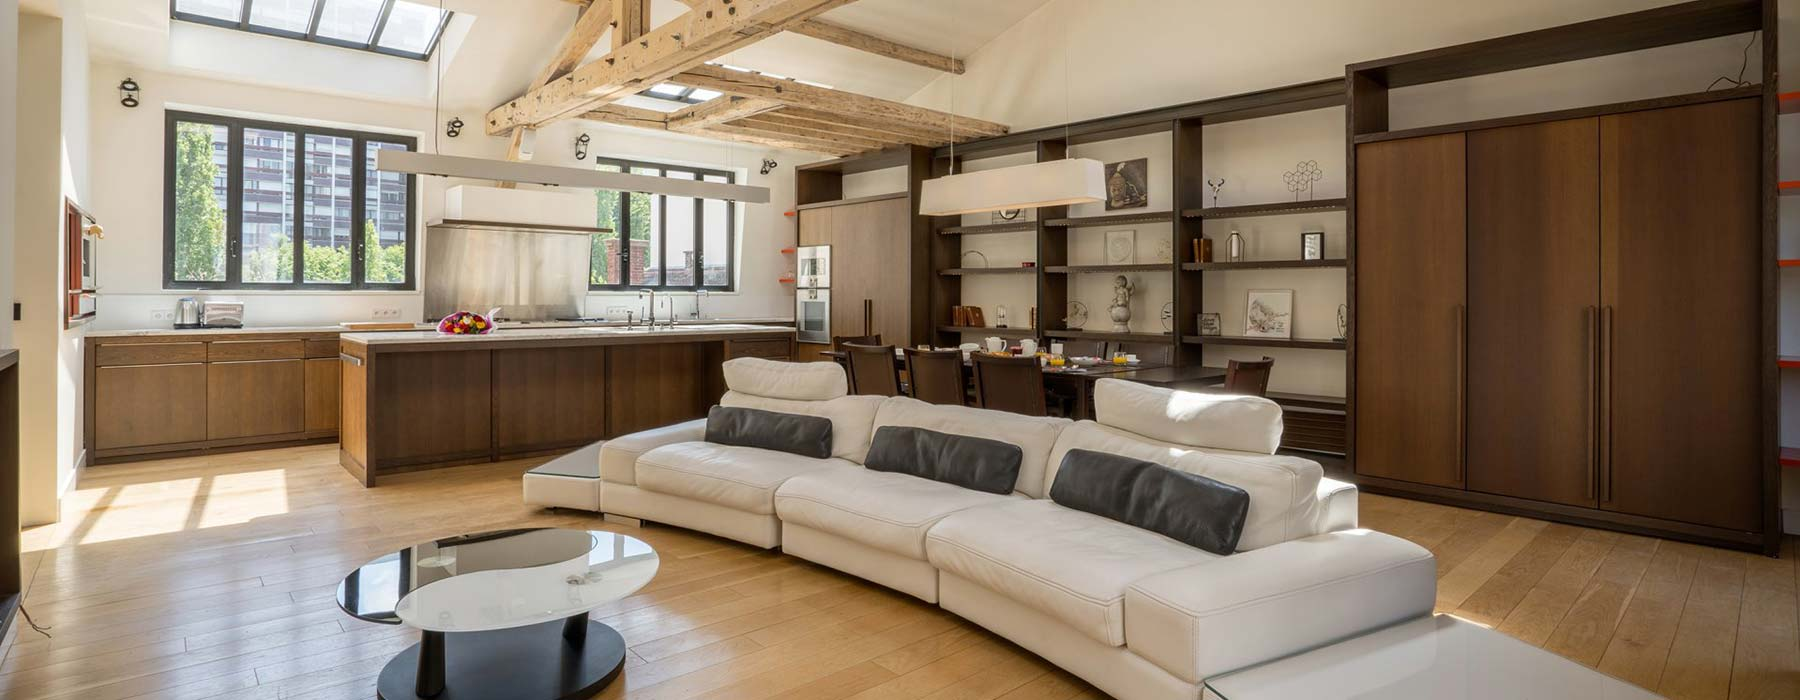 Paris 75017 - France - House, 8 rooms, 5 bedrooms - Slideshow Picture 2